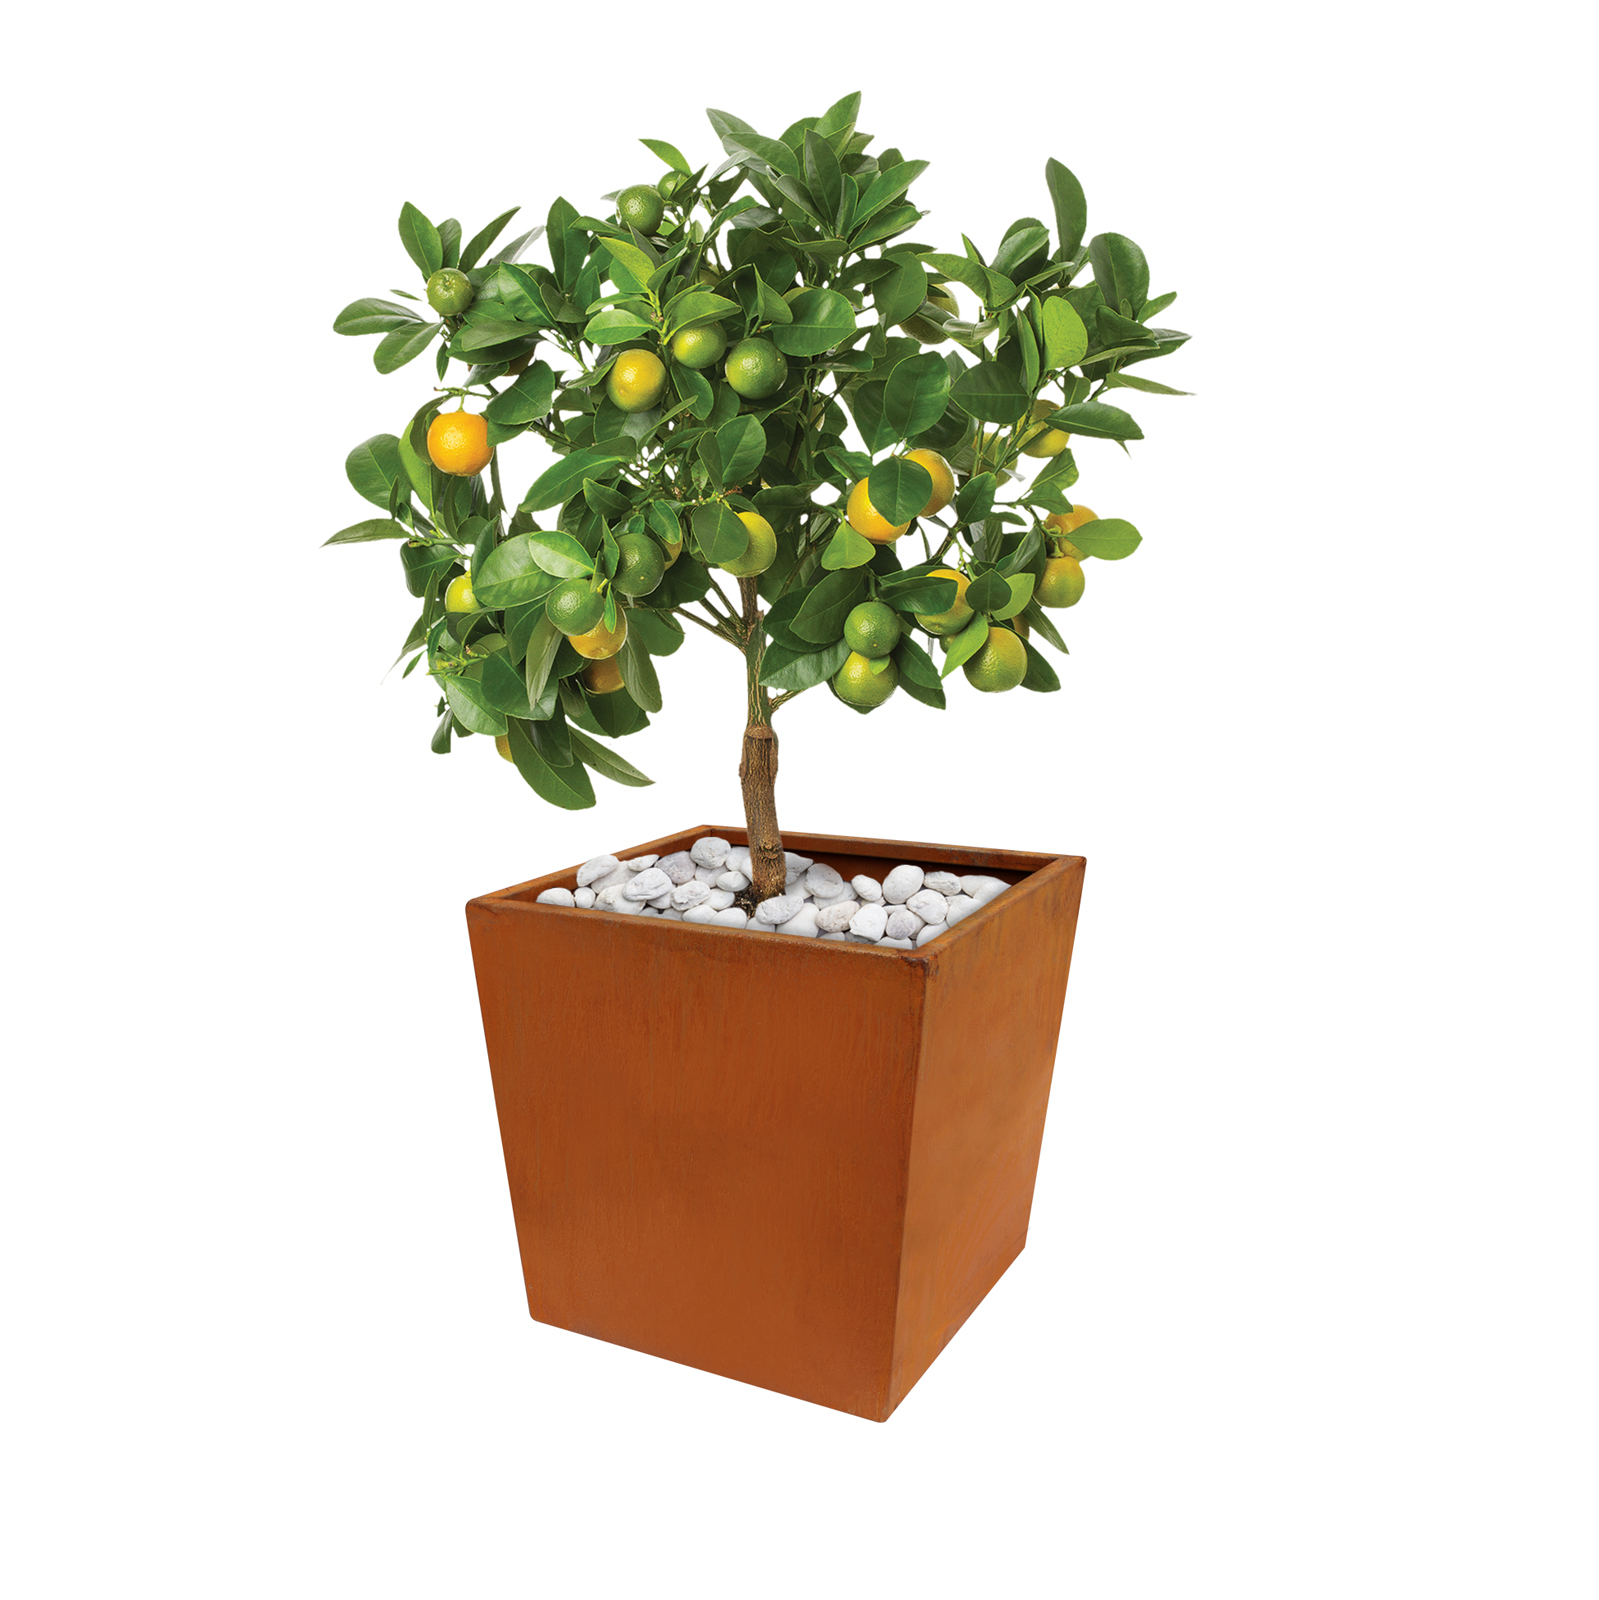 18480 casa planter with plants 410x410x405